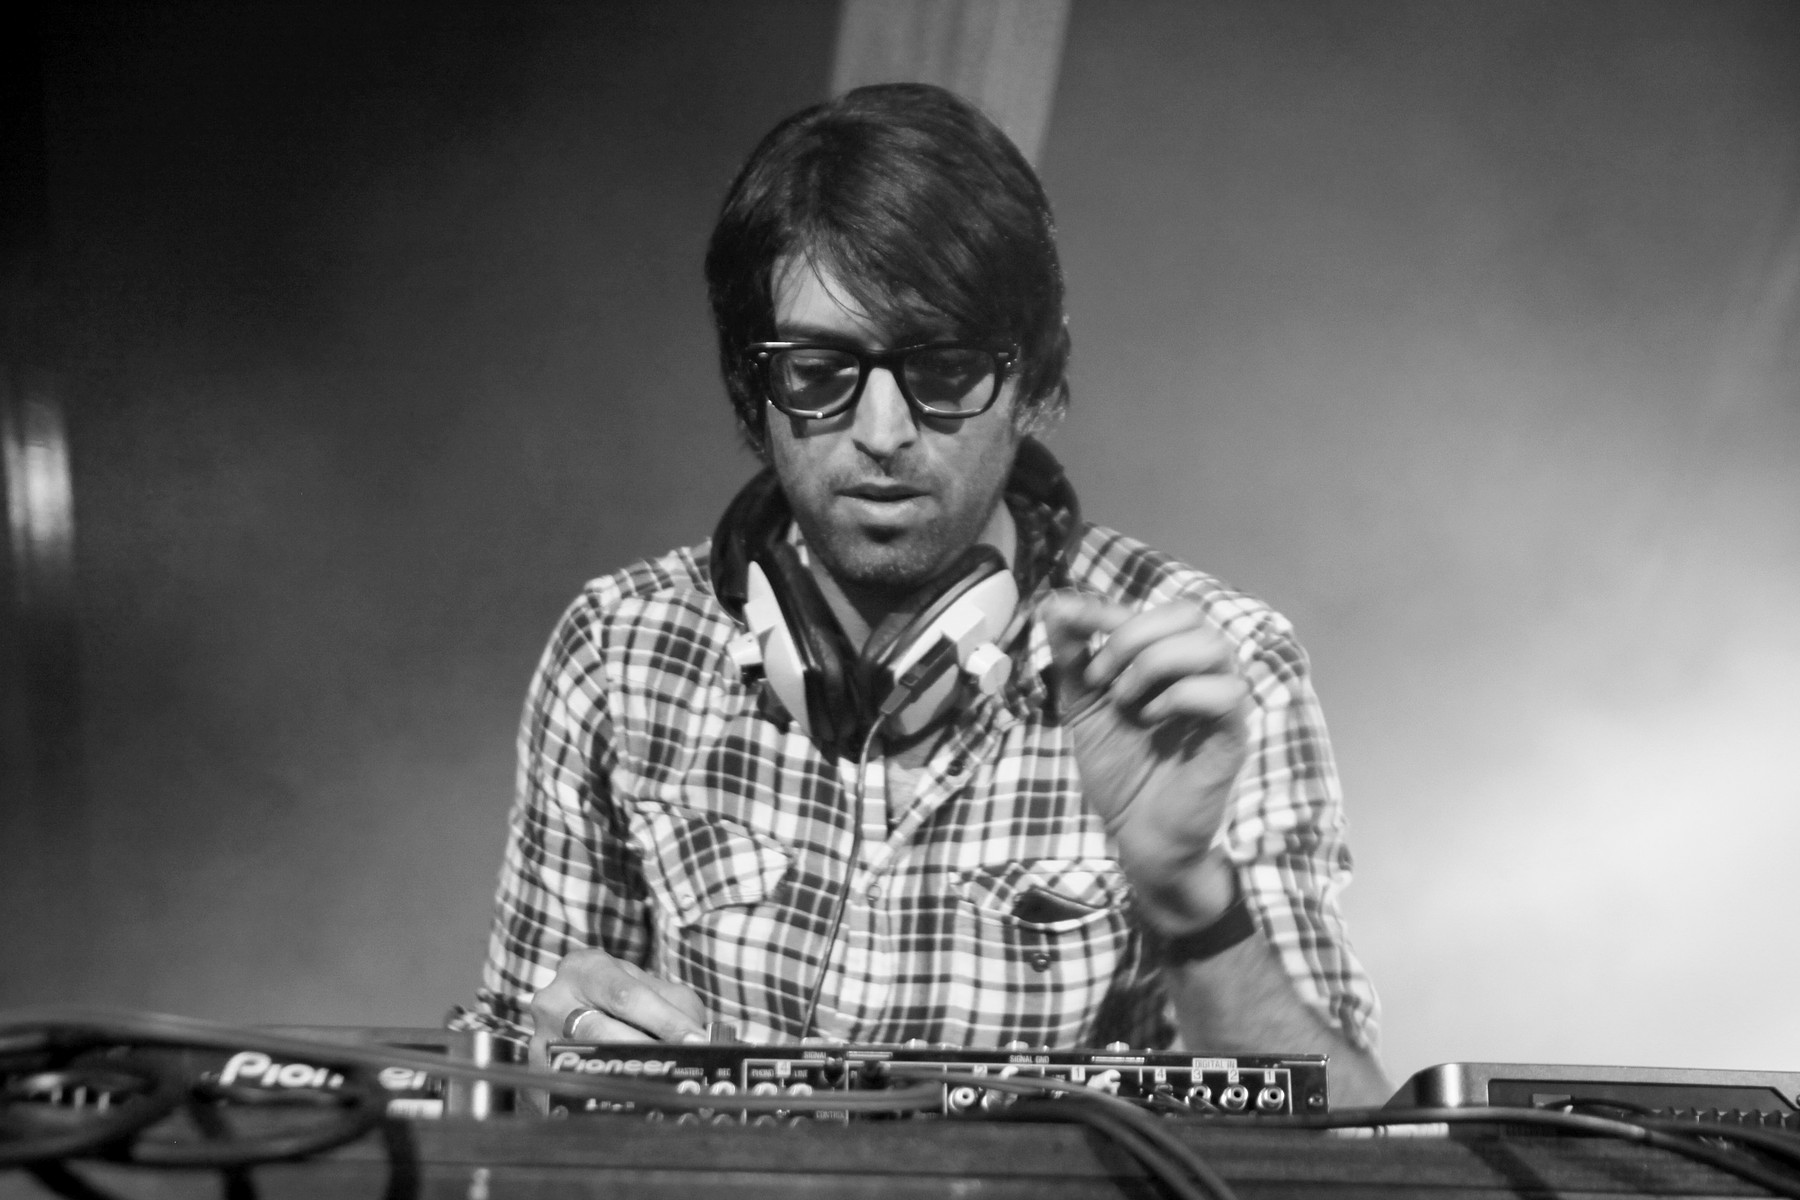 Erol Alkan, source: Livin Cool